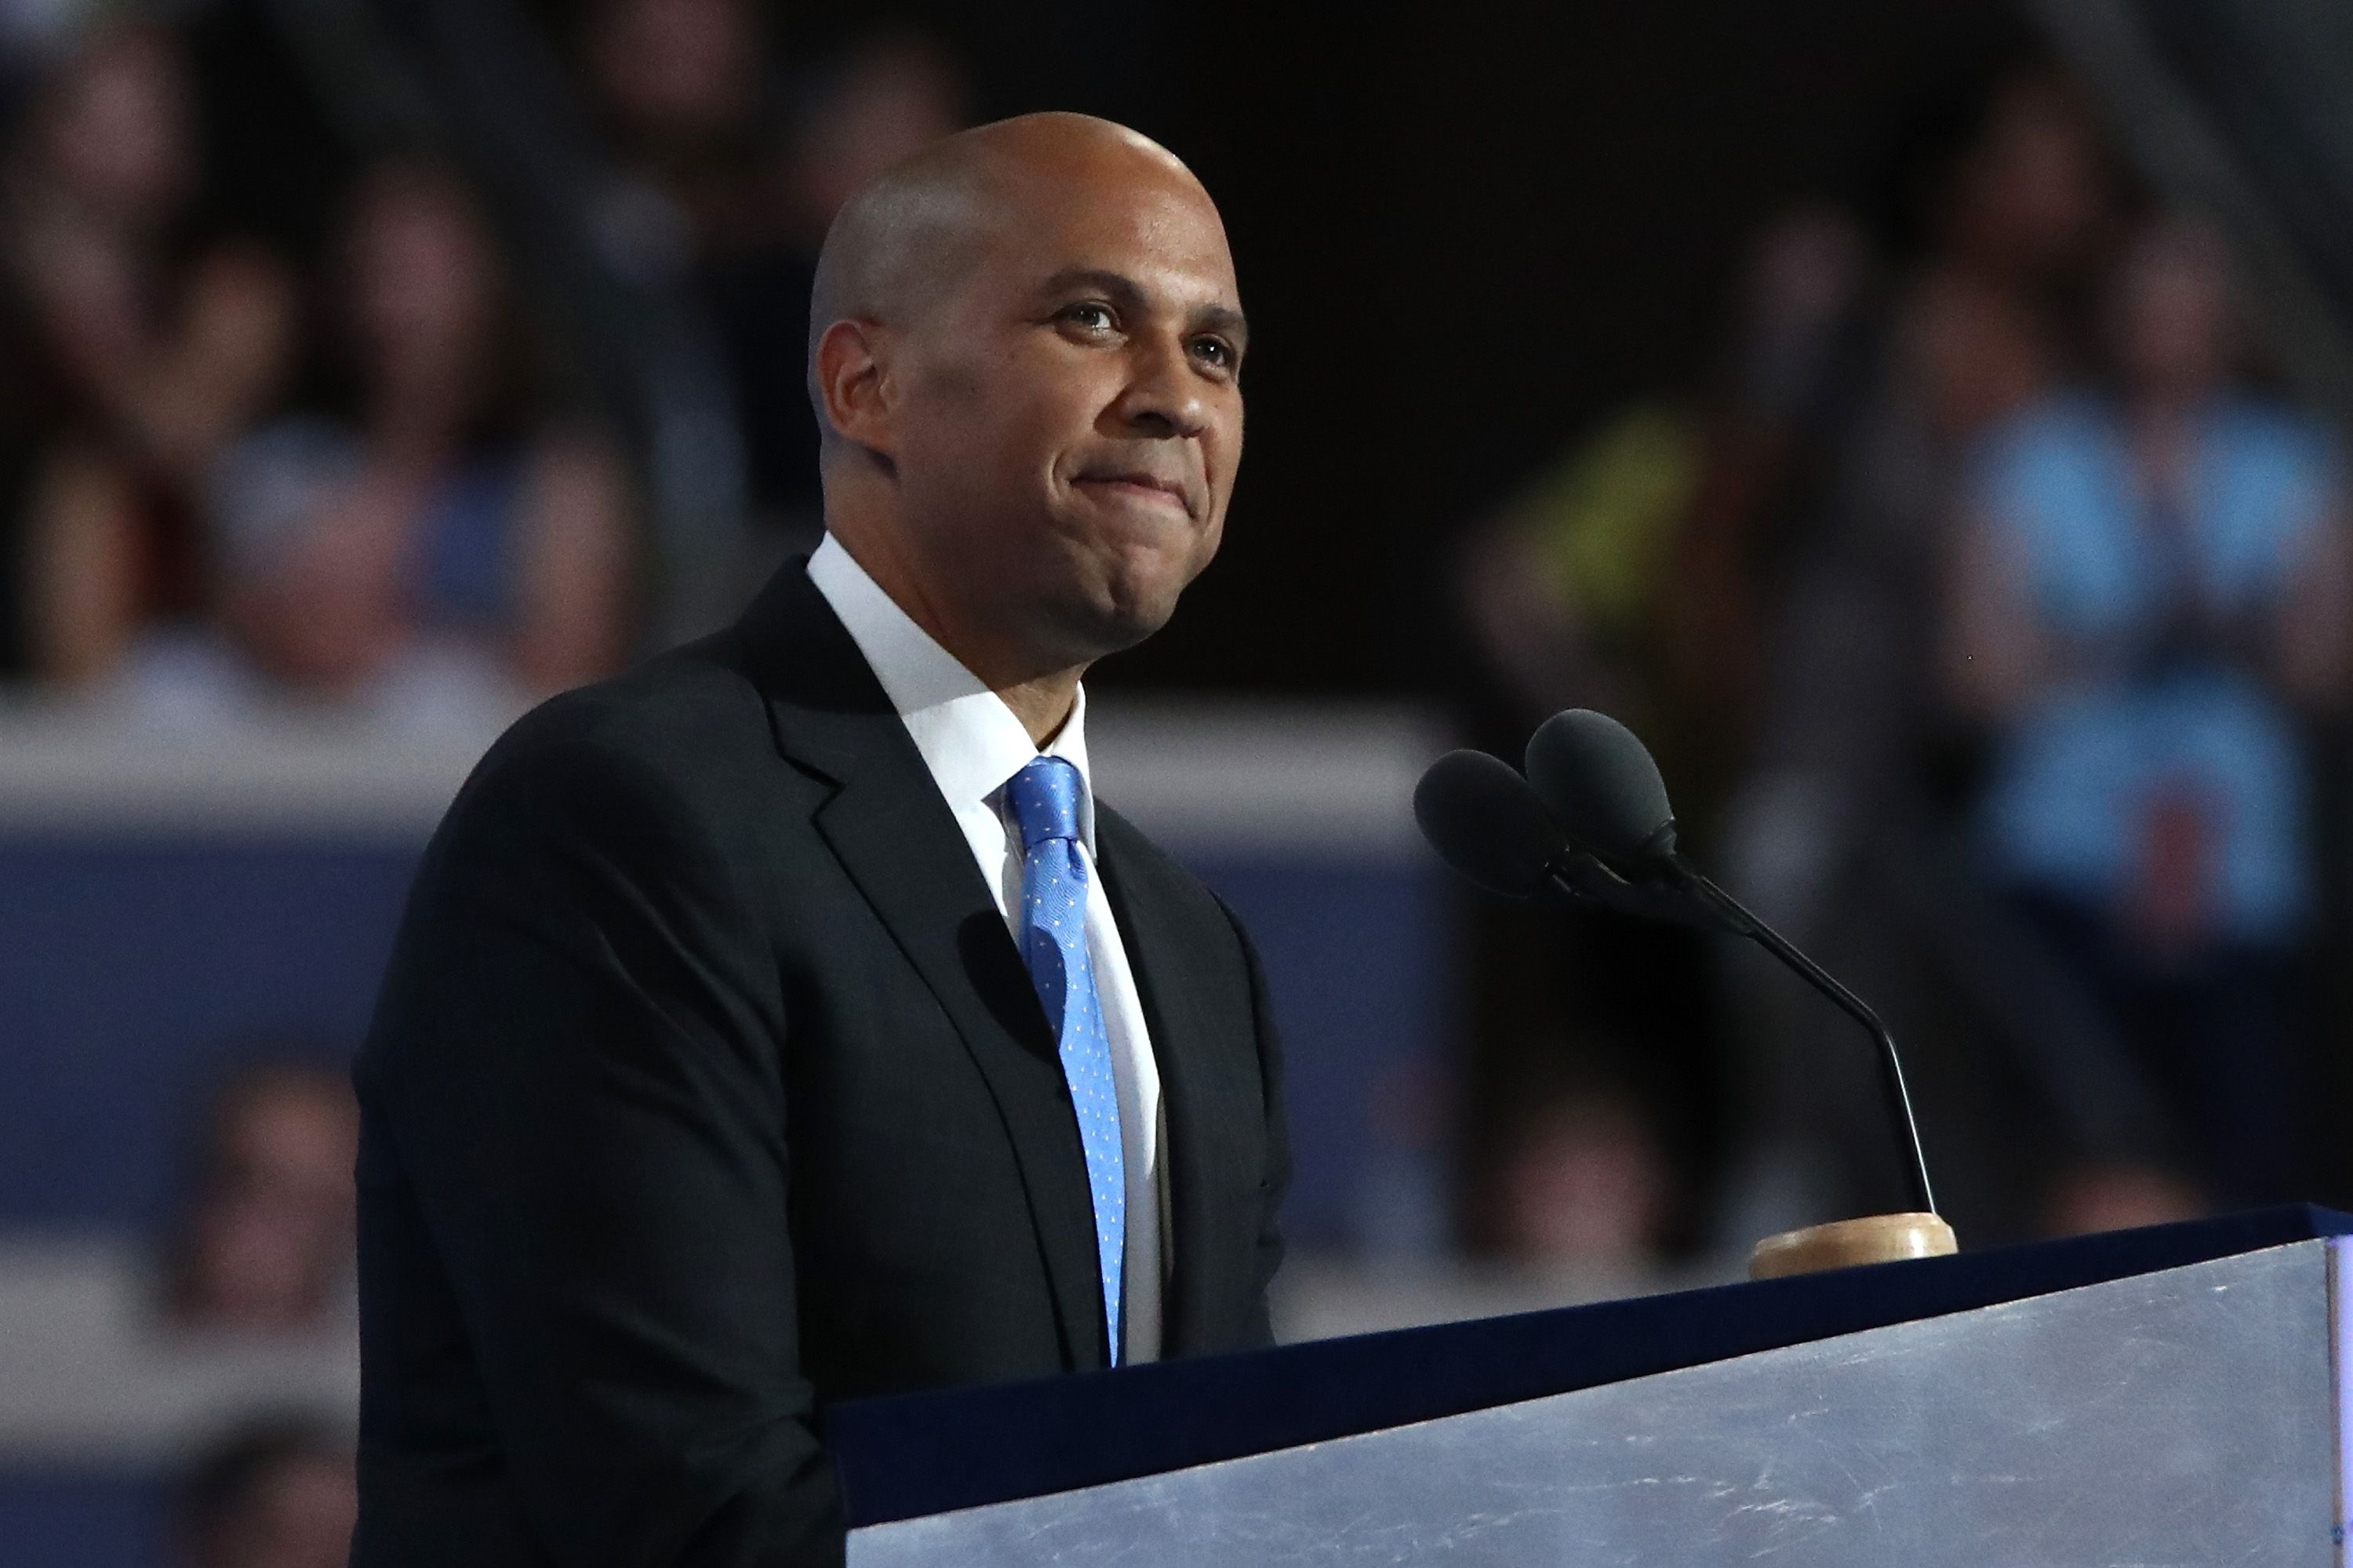 Here's Where Cory Booker Stands on 9 Important Issues